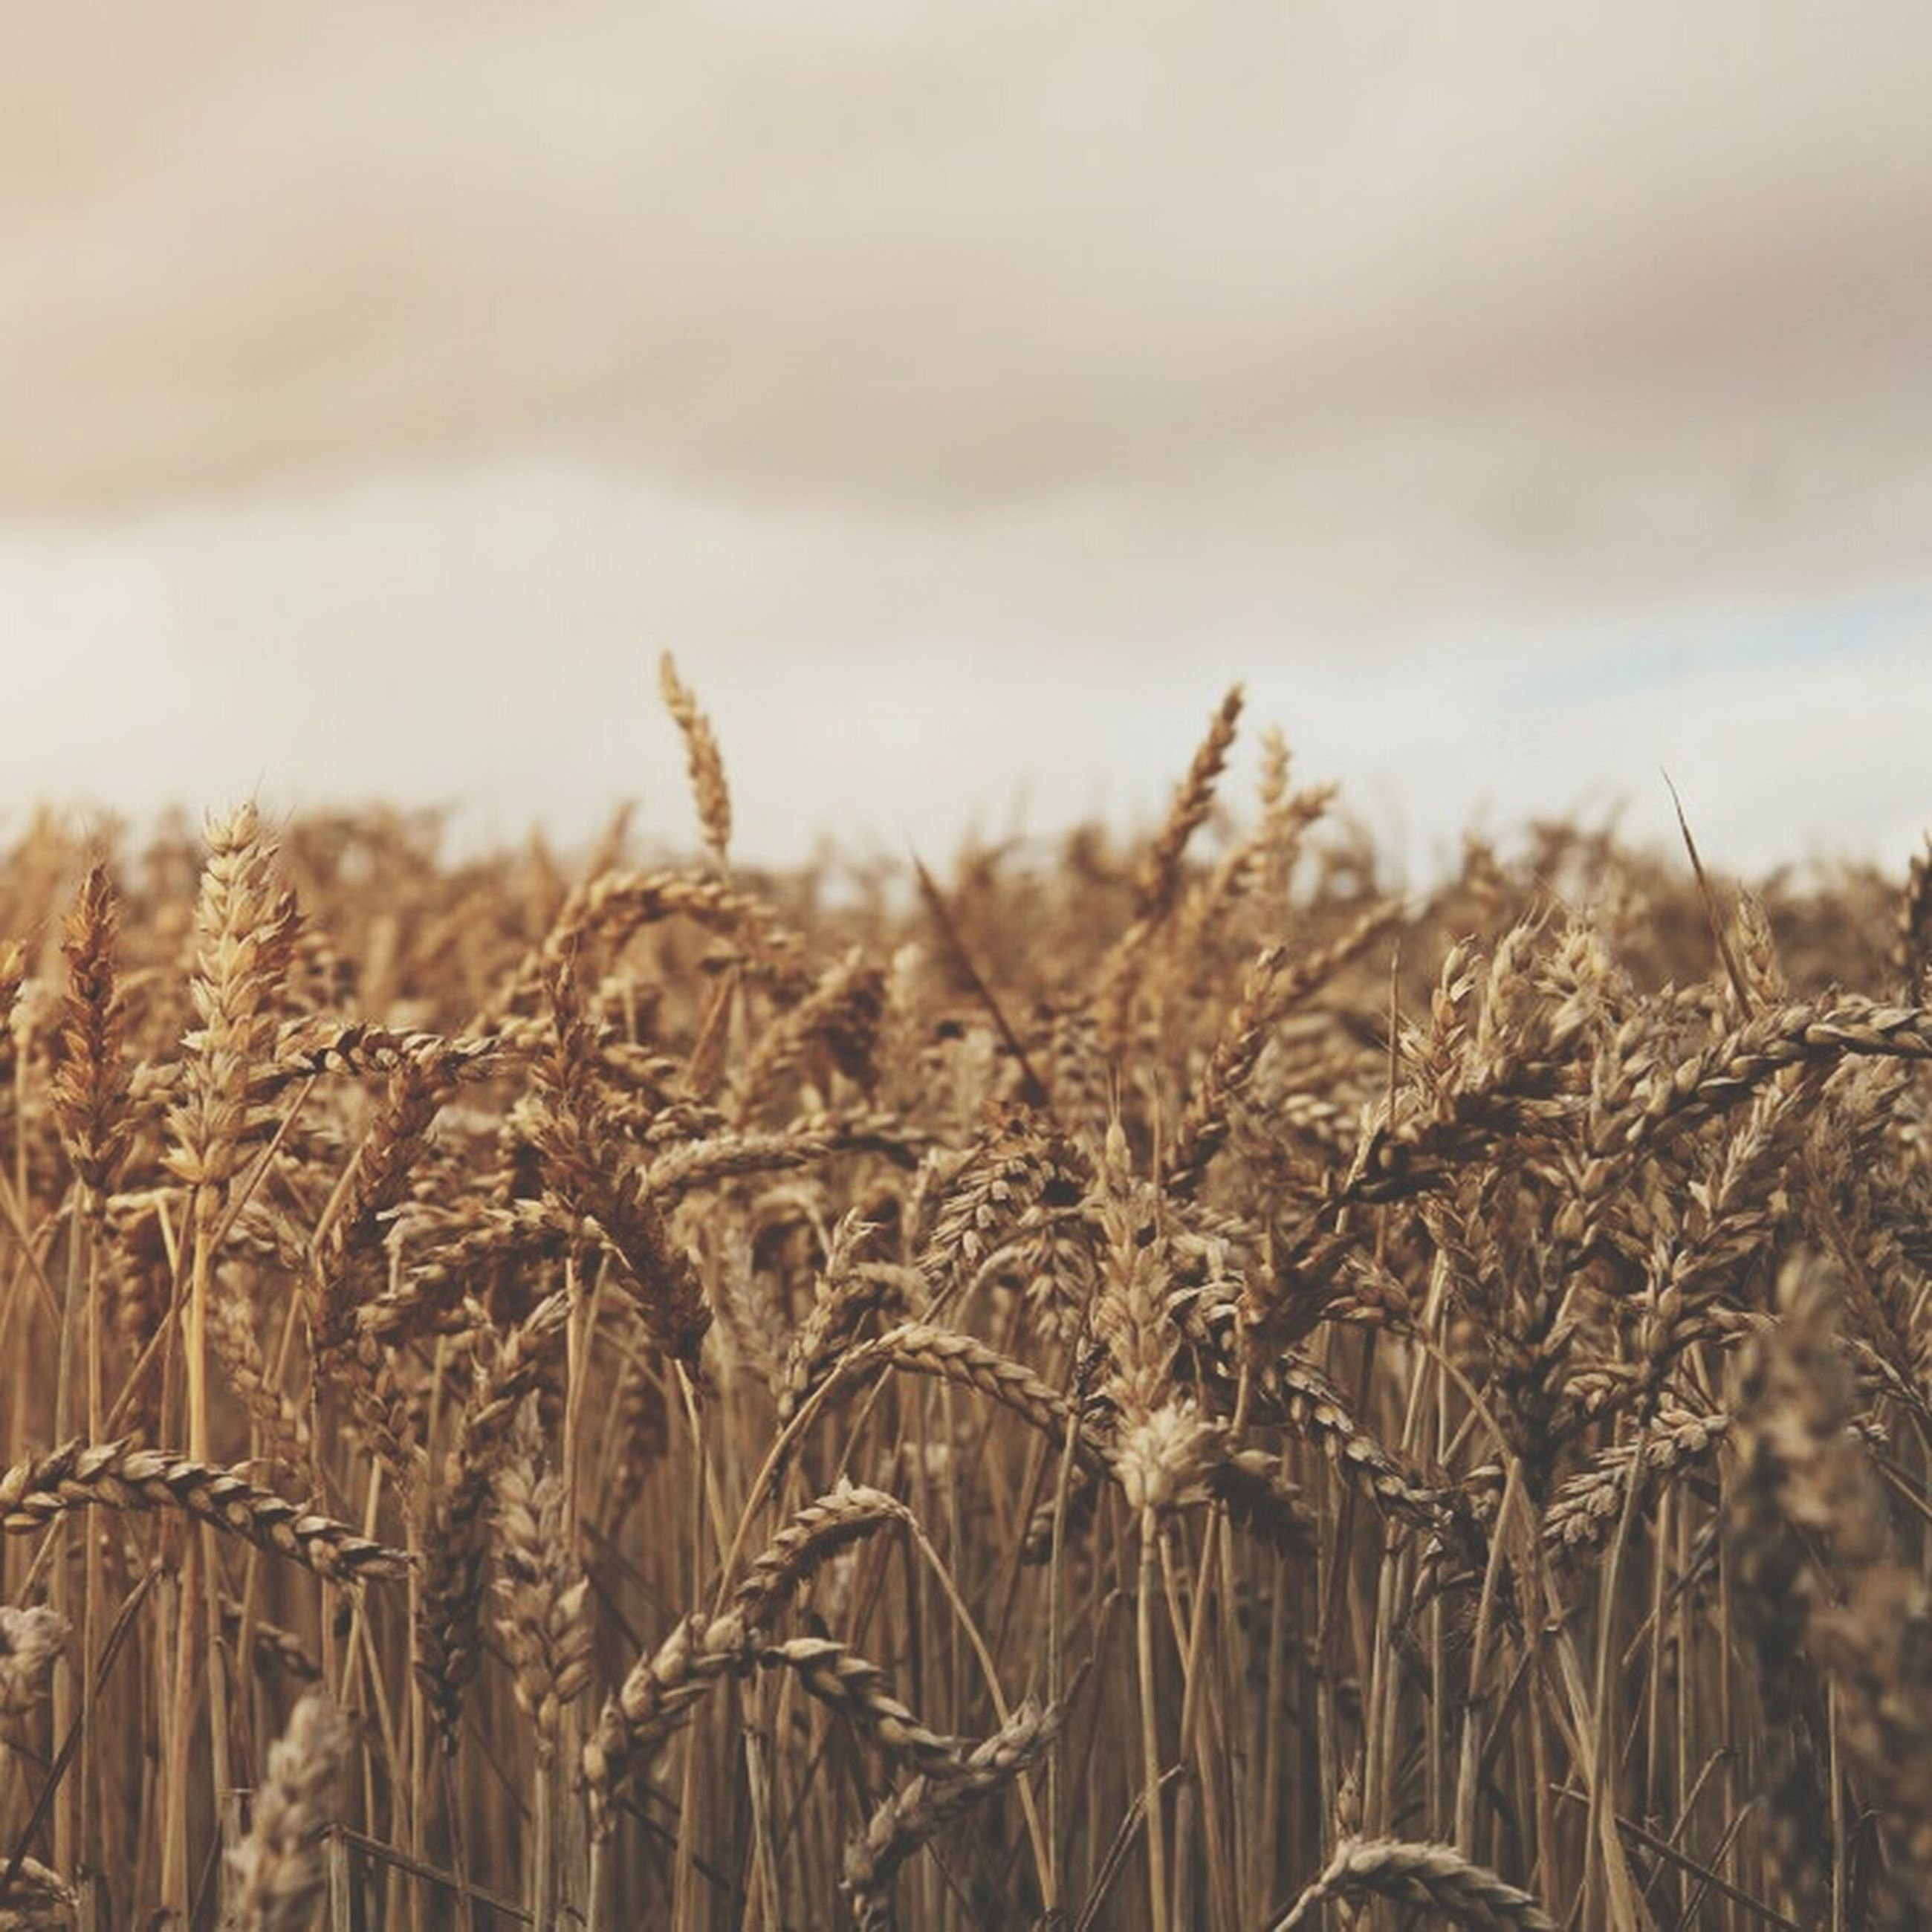 agriculture, field, rural scene, crop, growth, cereal plant, farm, wheat, nature, sky, plant, tranquility, landscape, focus on foreground, dry, beauty in nature, close-up, tranquil scene, outdoors, grass